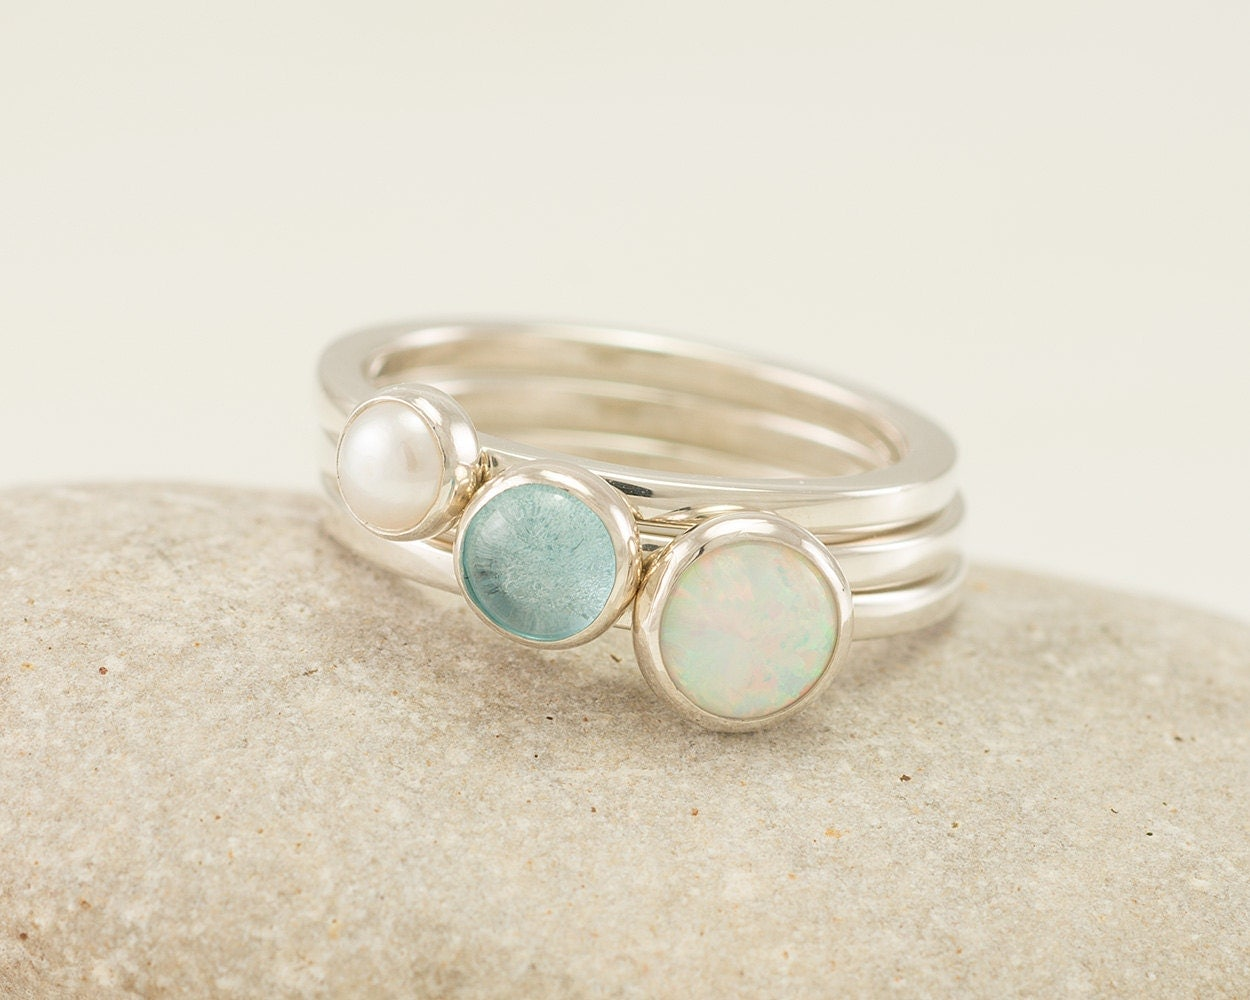 Stacking Rings Silver Stacking Ring Set Stack Rings Stone Rings Opal  Ring, Pearl Ring, Blue Topaz Ring, Mothers Ring Stackable